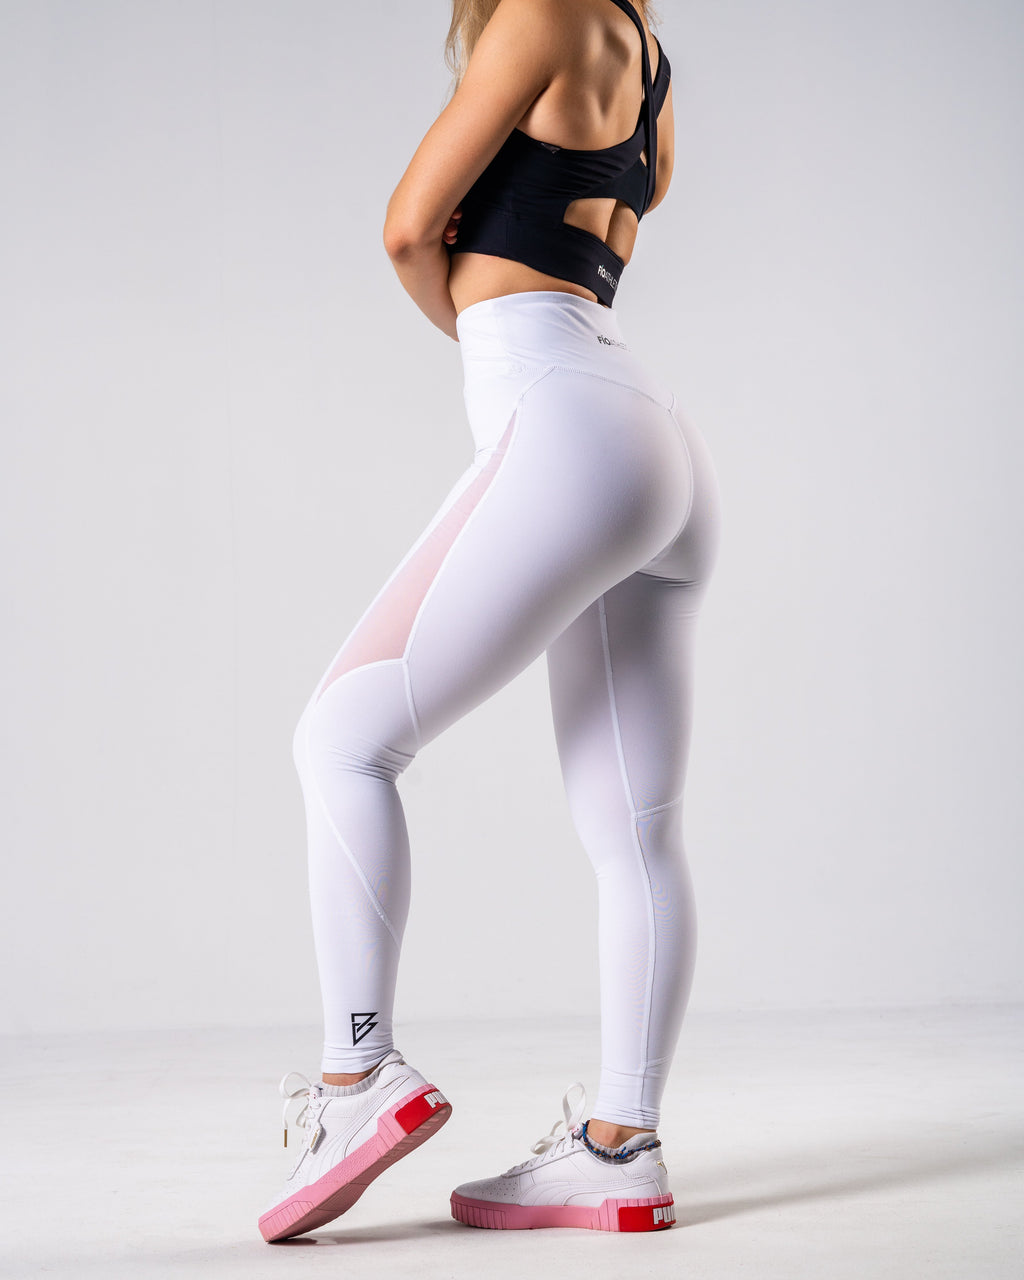 Lush Mesh Leggings - White - FIO Athletics